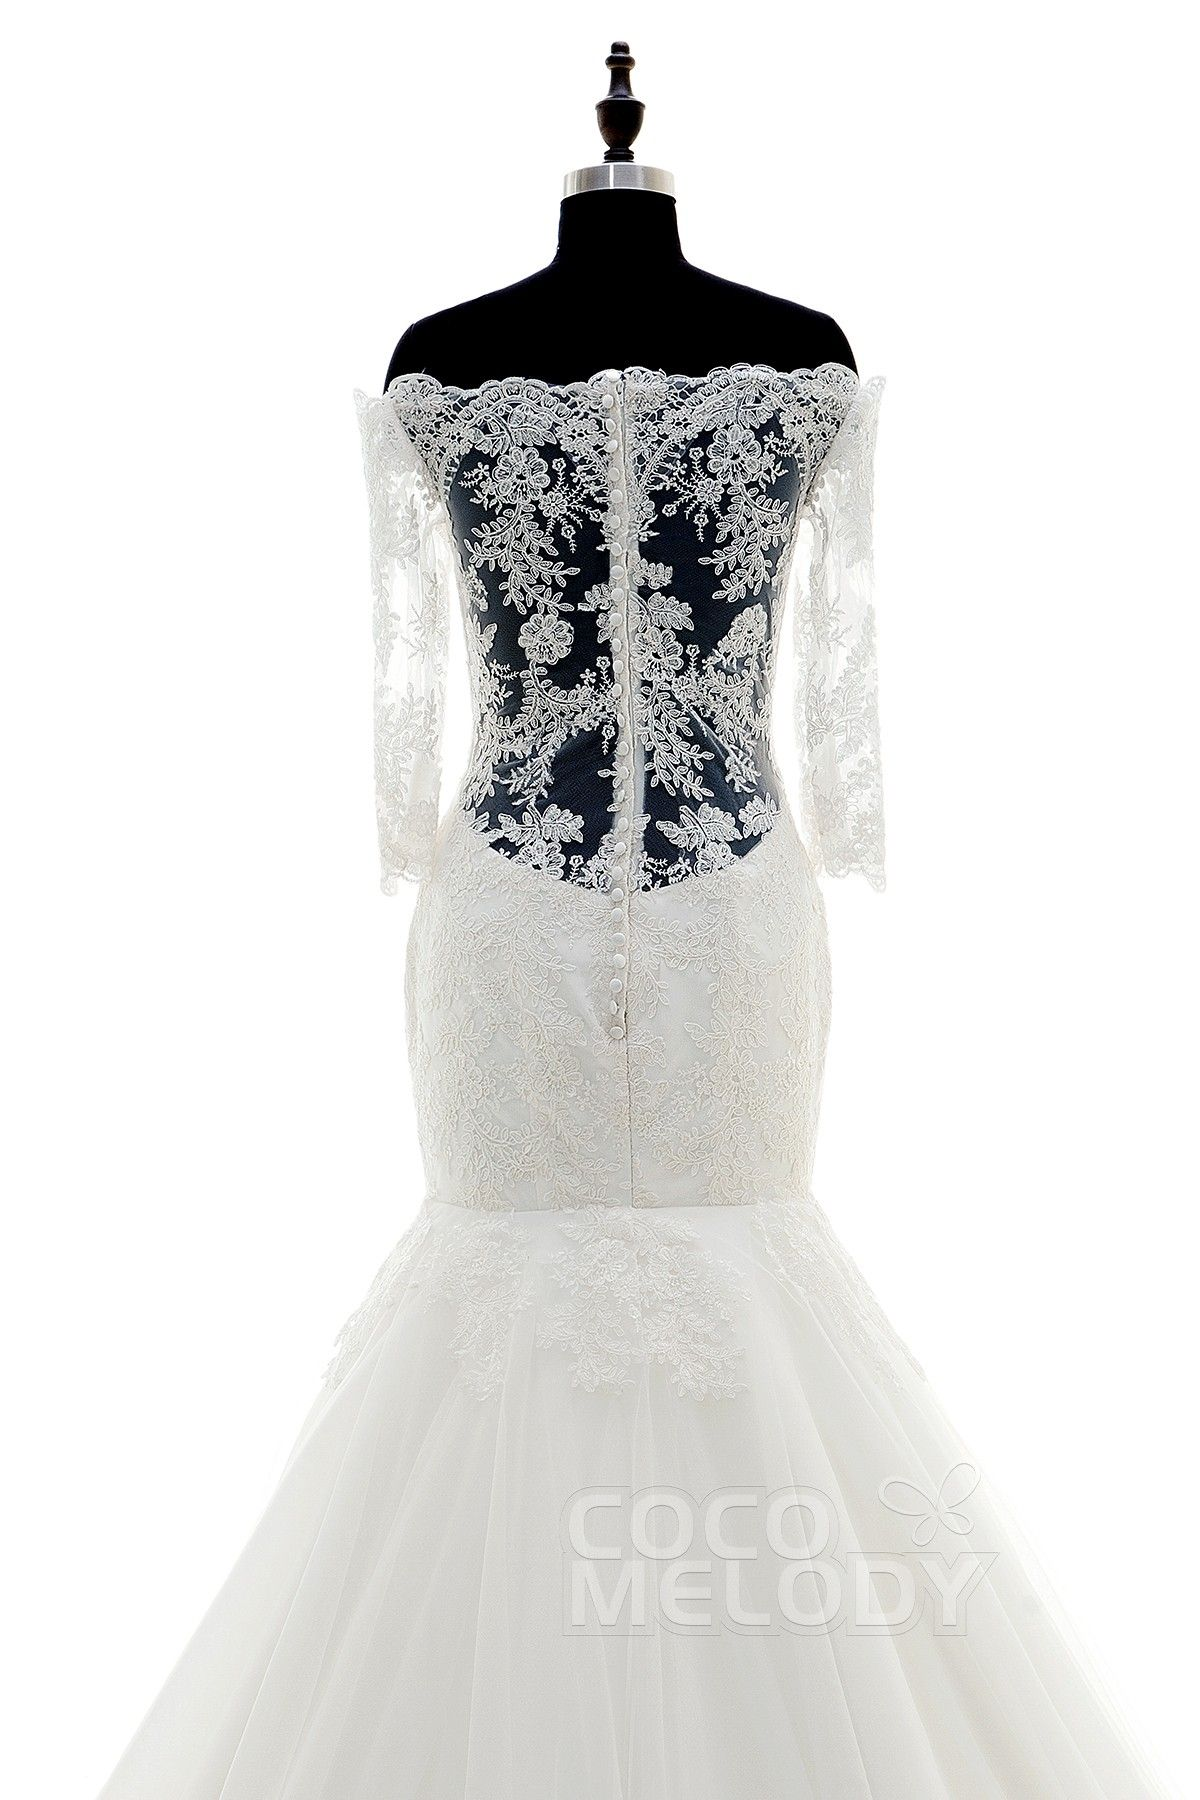 3/4 length lace wedding dress  TrumpetMermaid Off the Shoulder Dropped Court Train Tulle and Lace